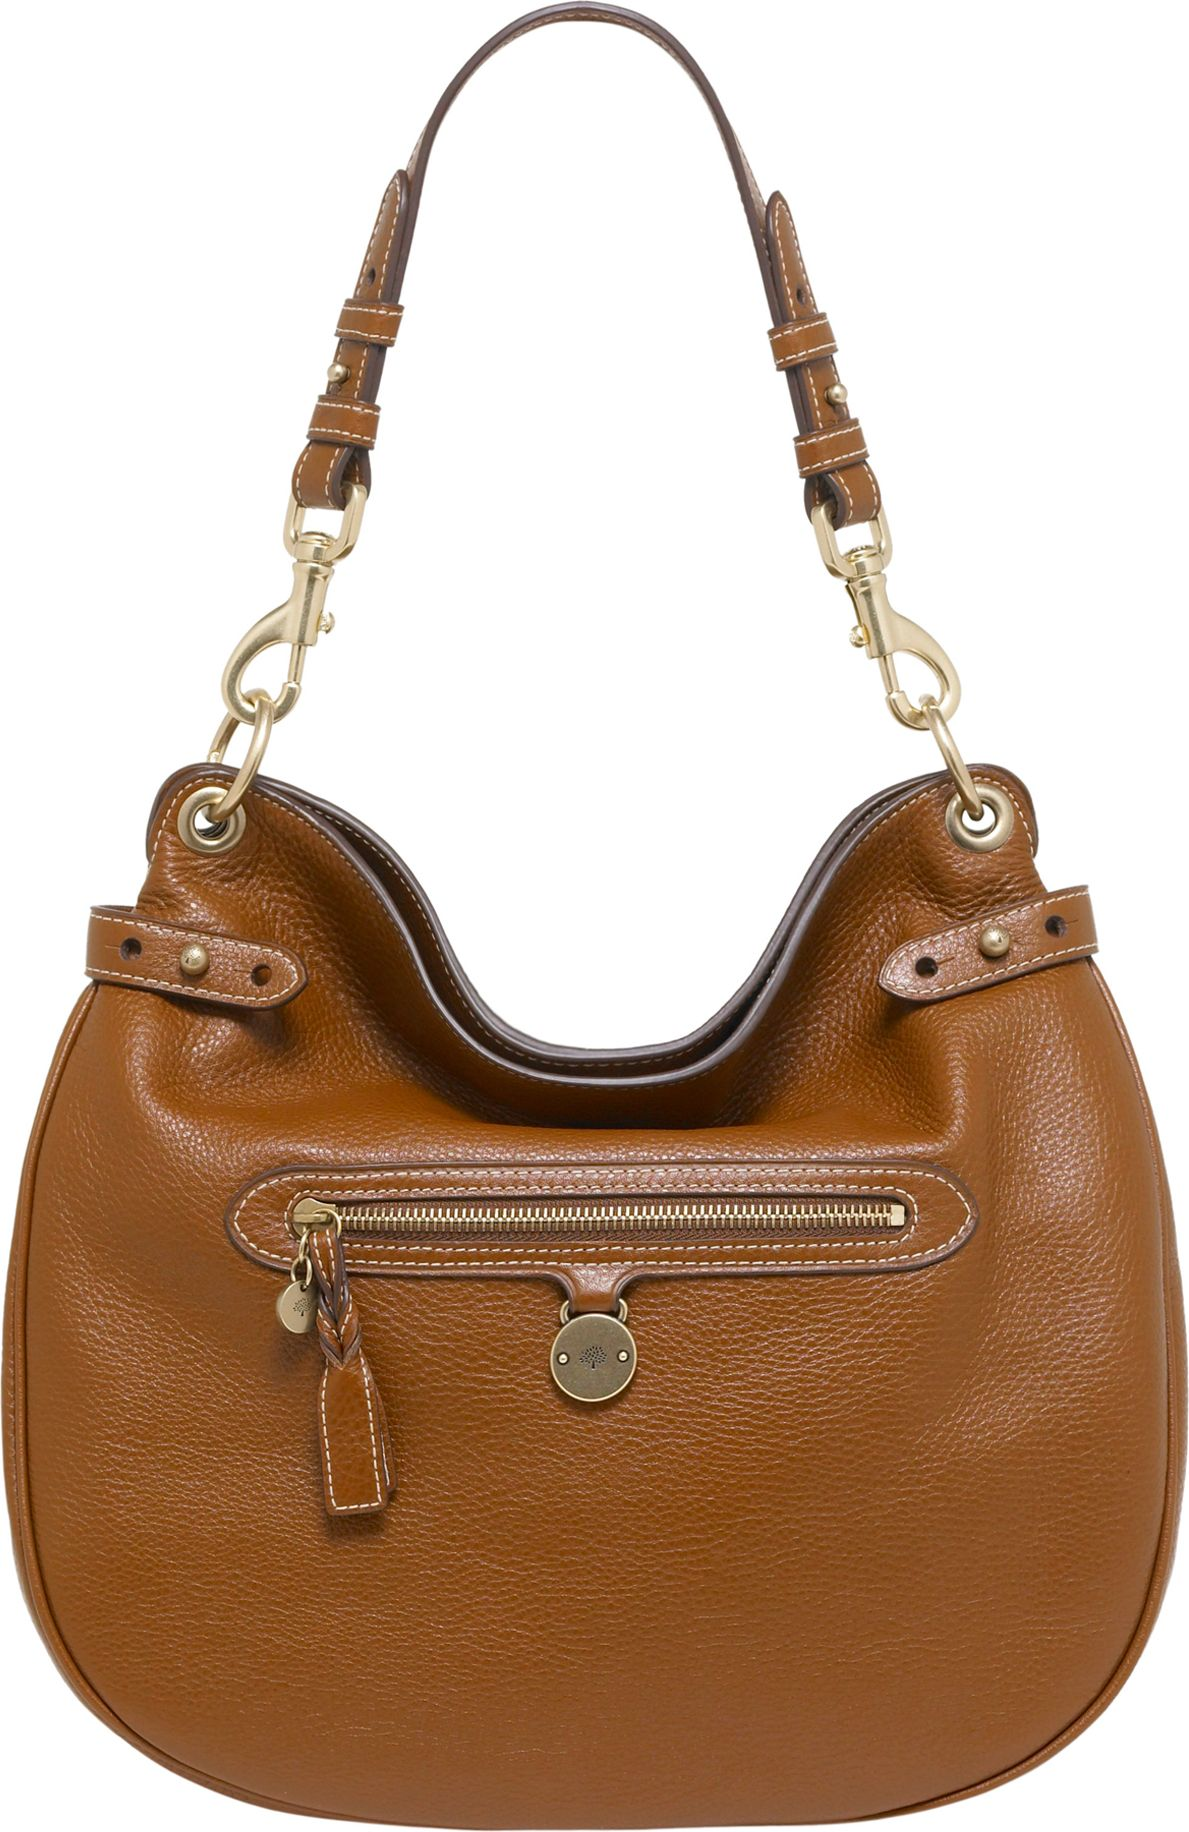 Mulberry Somerset Pebbled Leather Hobo in Brown - Lyst 64d17da9c24a1